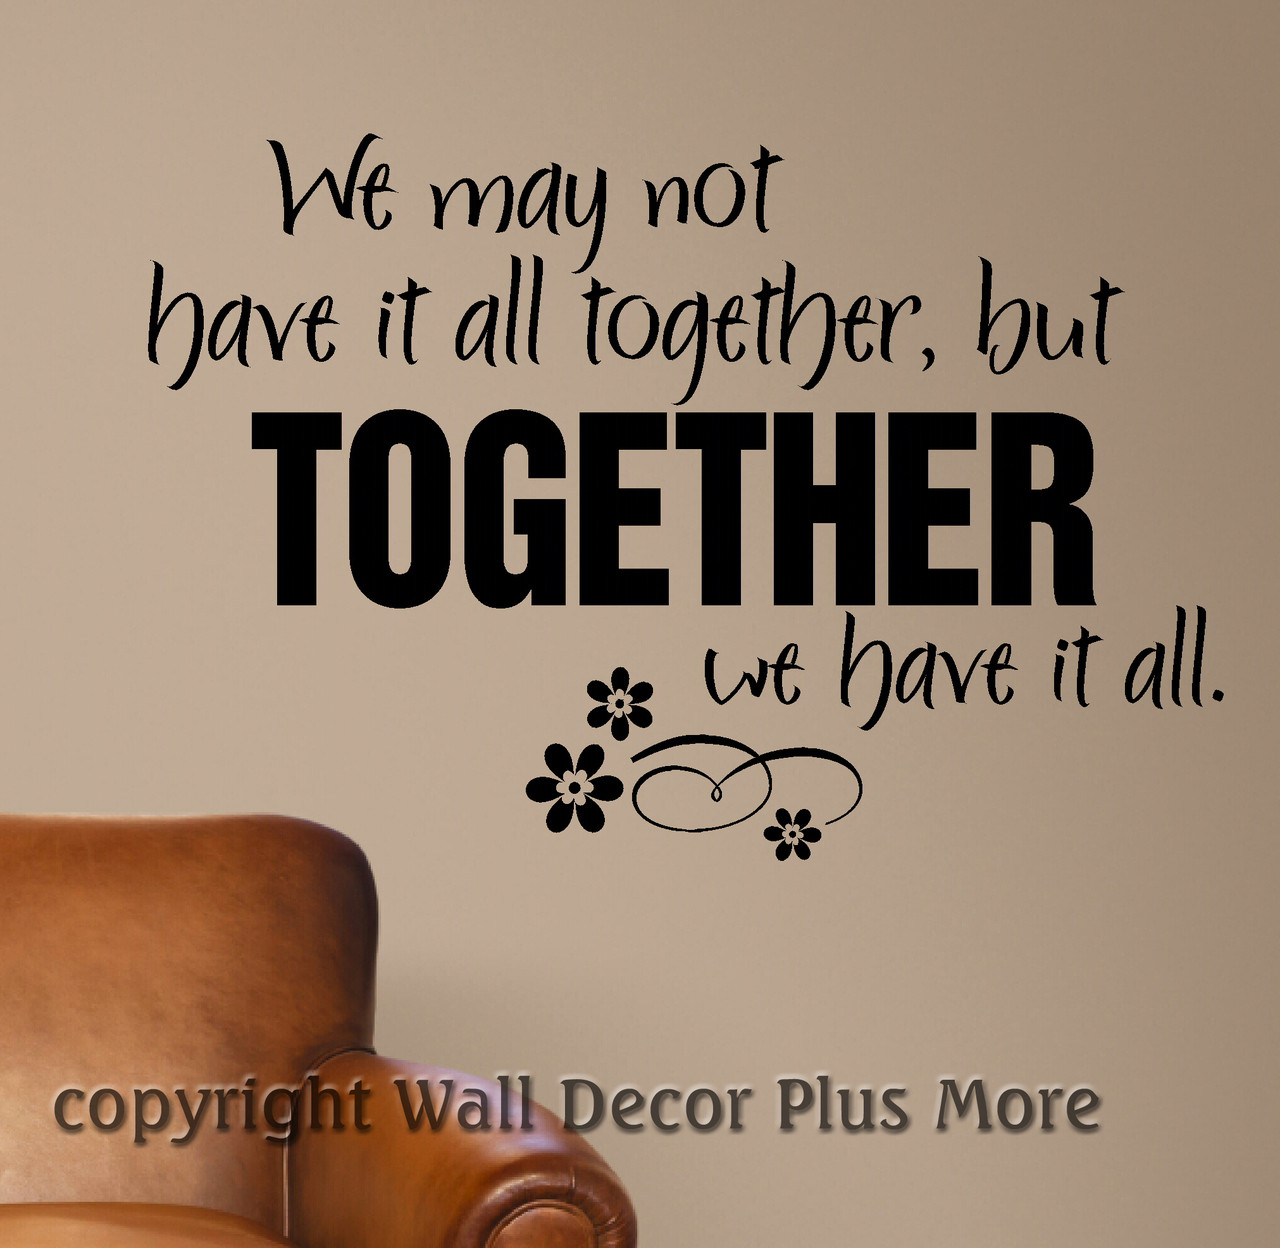 We may not have it all Together Family Wall Quotes Wall Decal Stickers  sc 1 st  Wall Decor Plus More & We may not have it all Together... Family Wall Quotes Wall Decal ...